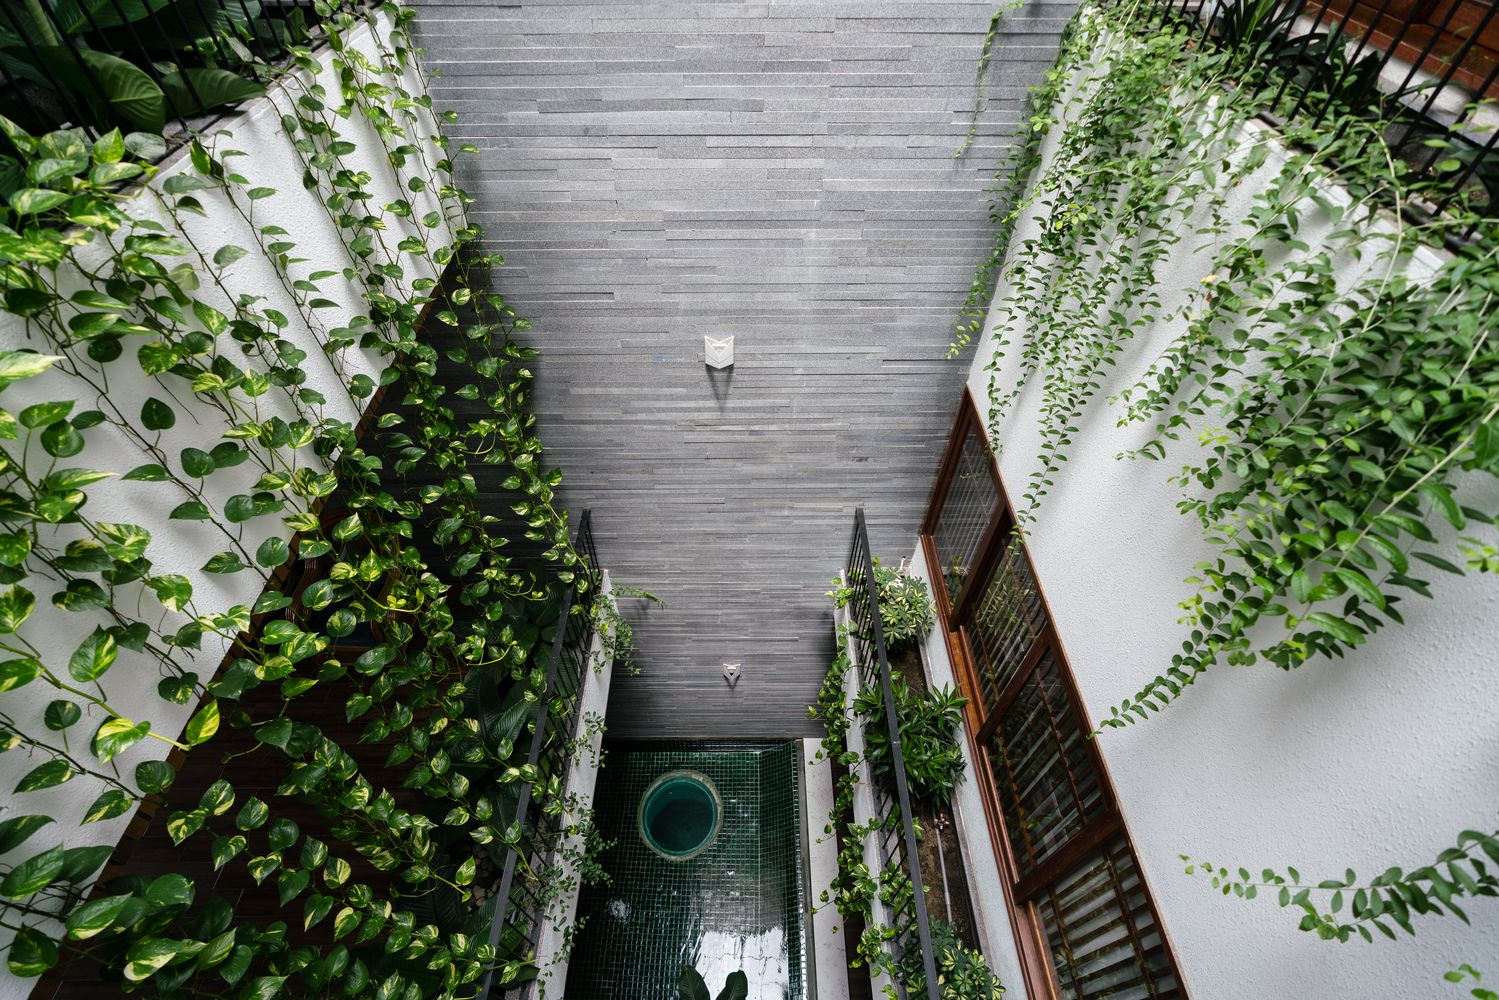 Gallery Of Swhouse Office And House In Nha Trang Chon A